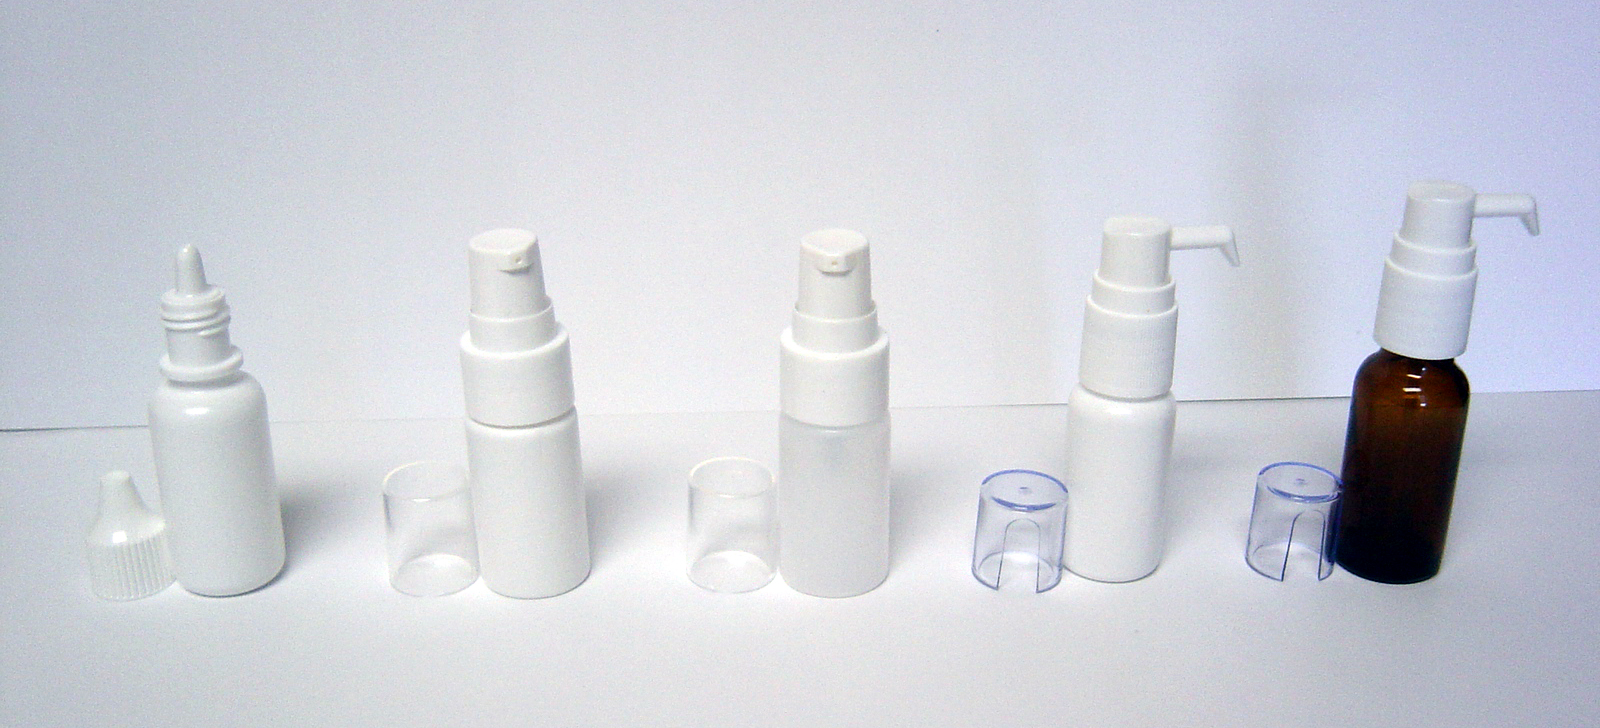 Bottles / Vials for Allergy Drops (Under Tongue